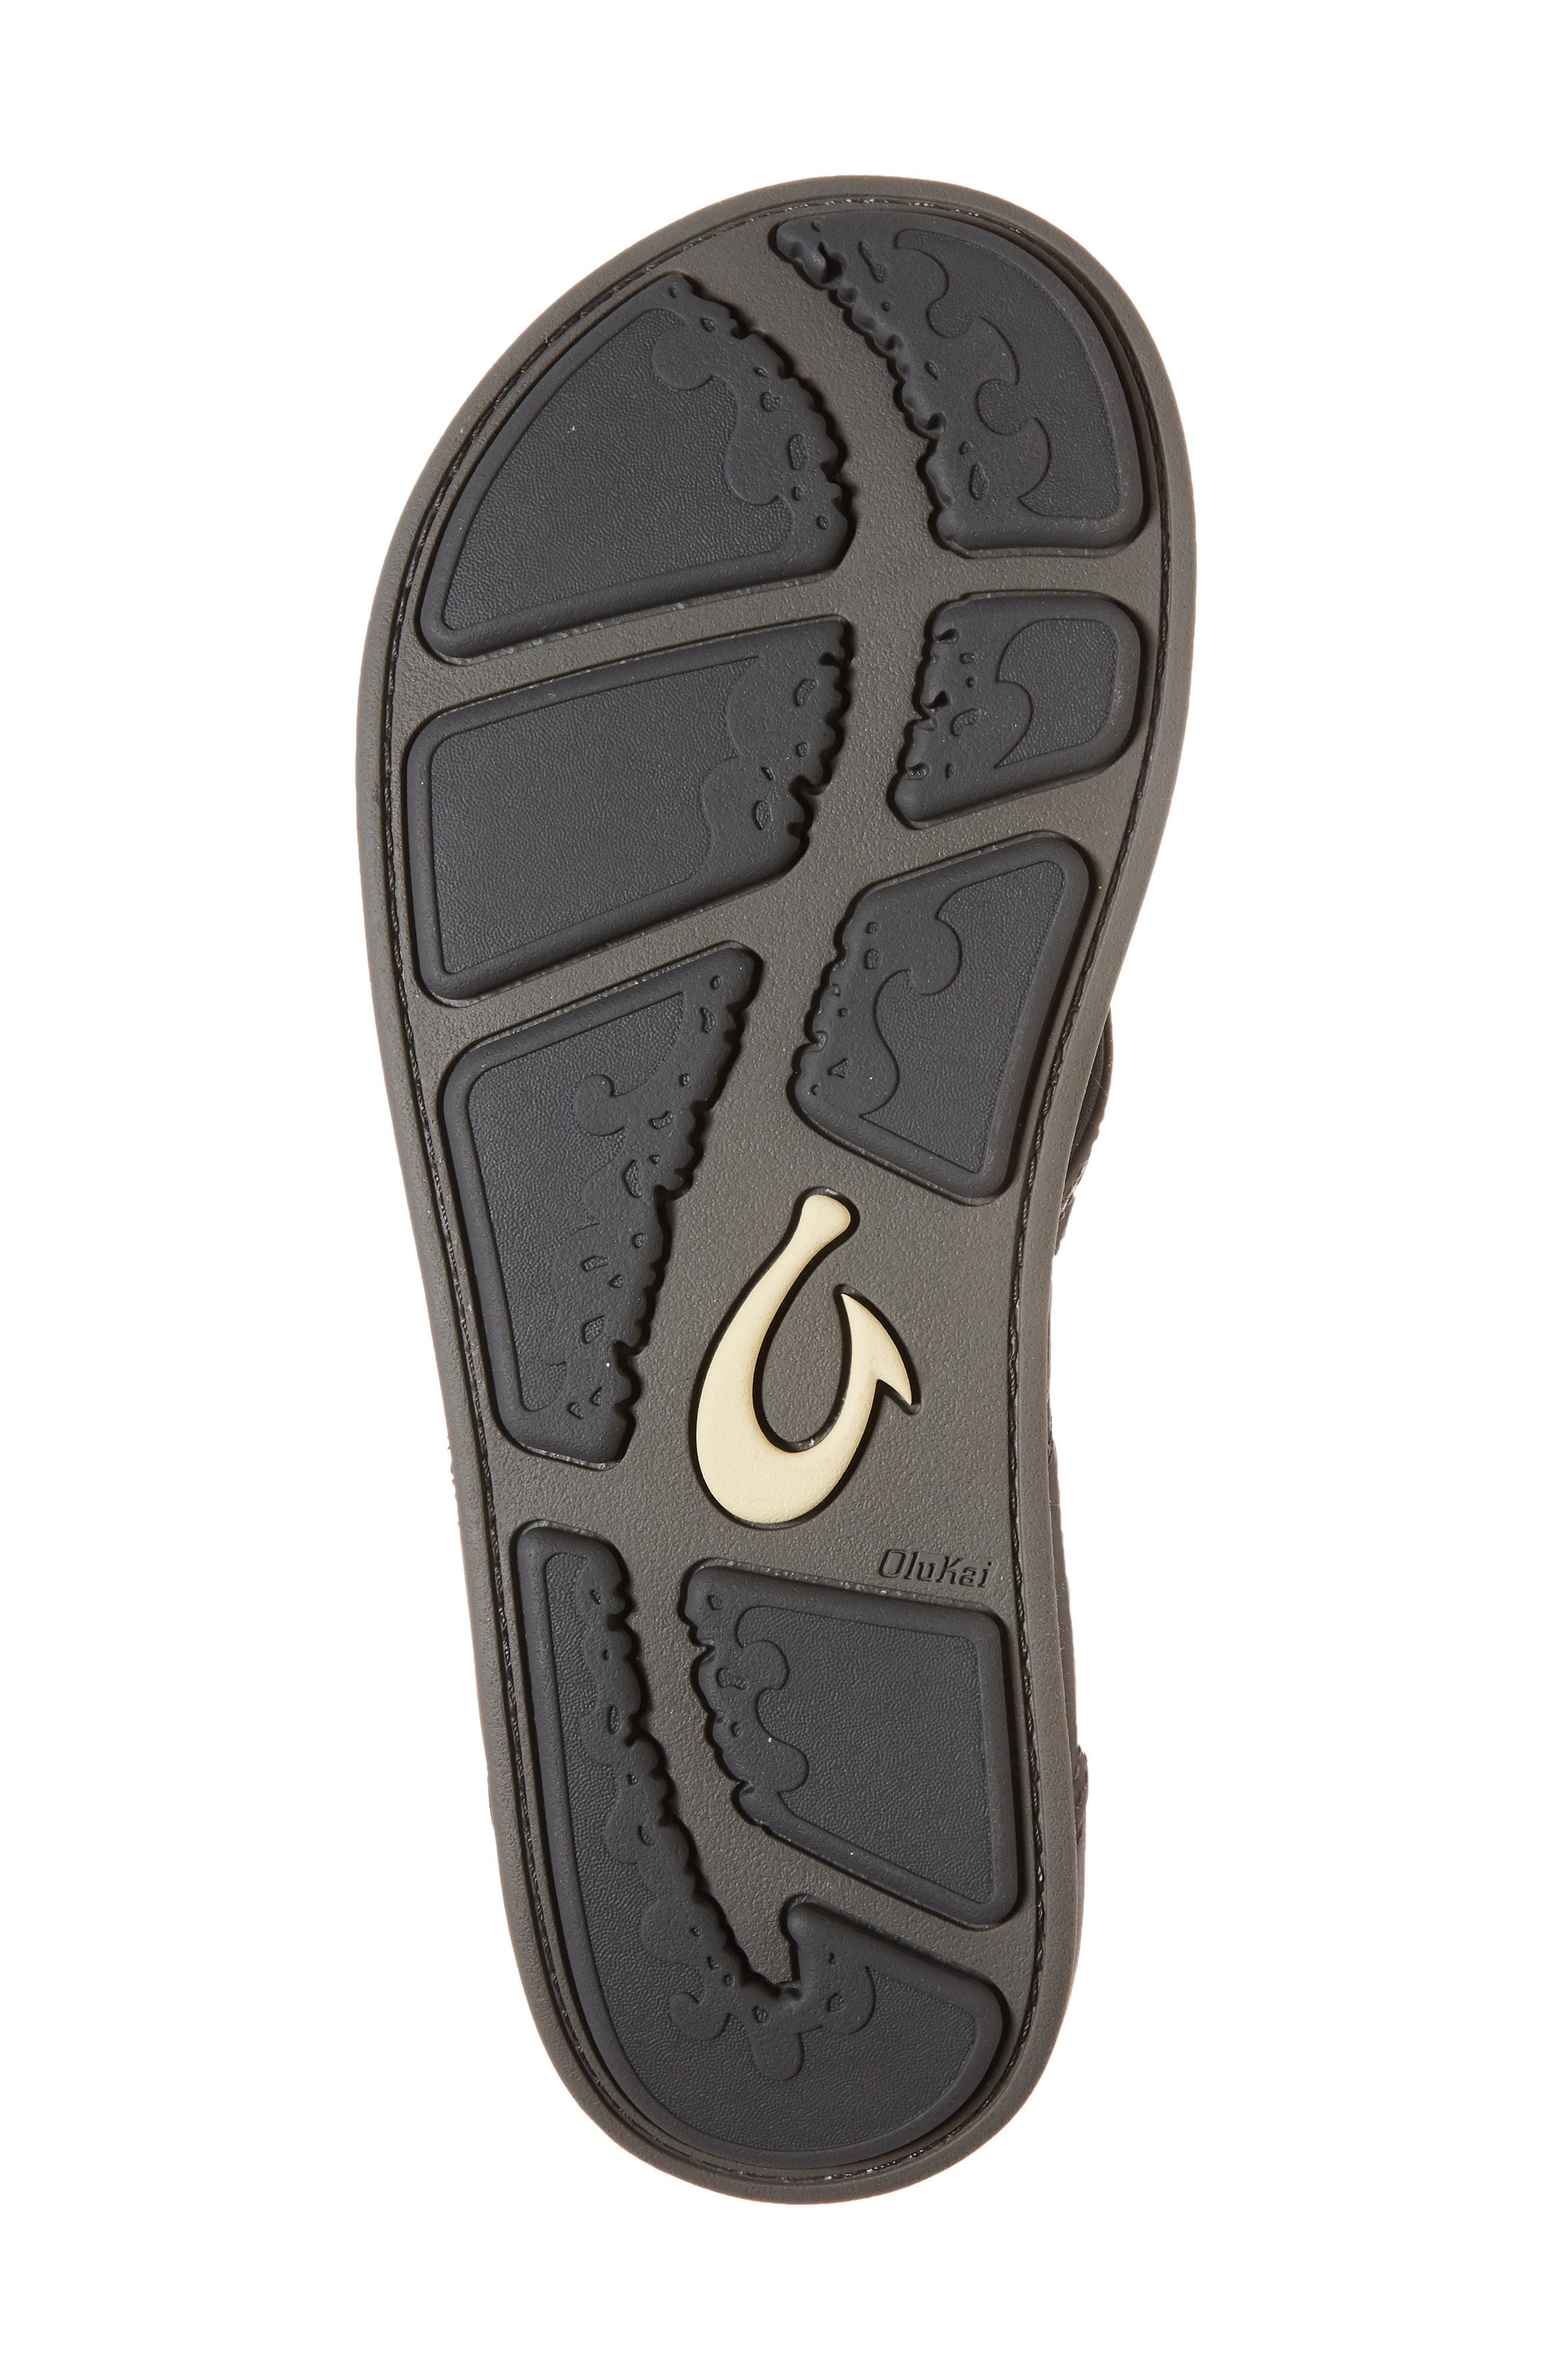 'Nui' Leather Flip Flop,                             Alternate thumbnail 6, color,                             DARK SHADOW/ CHARCOAL LEATHER